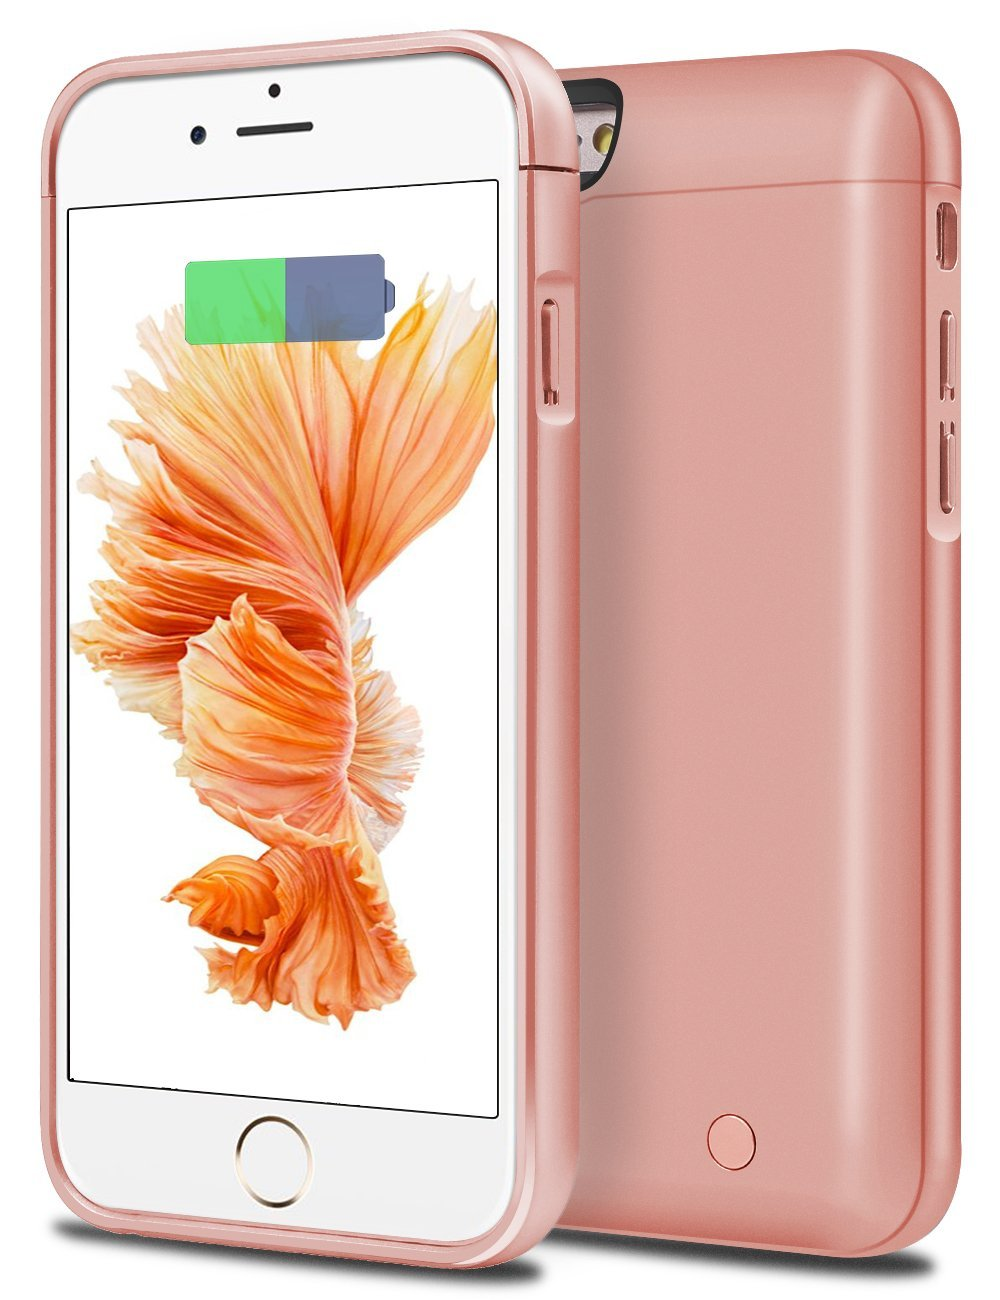 iPhone 6S Battery Case, iPhone 6 Battery Case, Cheeringary 5000 mAh External Battery Case iPhone 6 6S Battery Pack Portable Charger Charging Case for iPhone 6S / 6 4.7'' - Power Bank Case (Rose Gold)